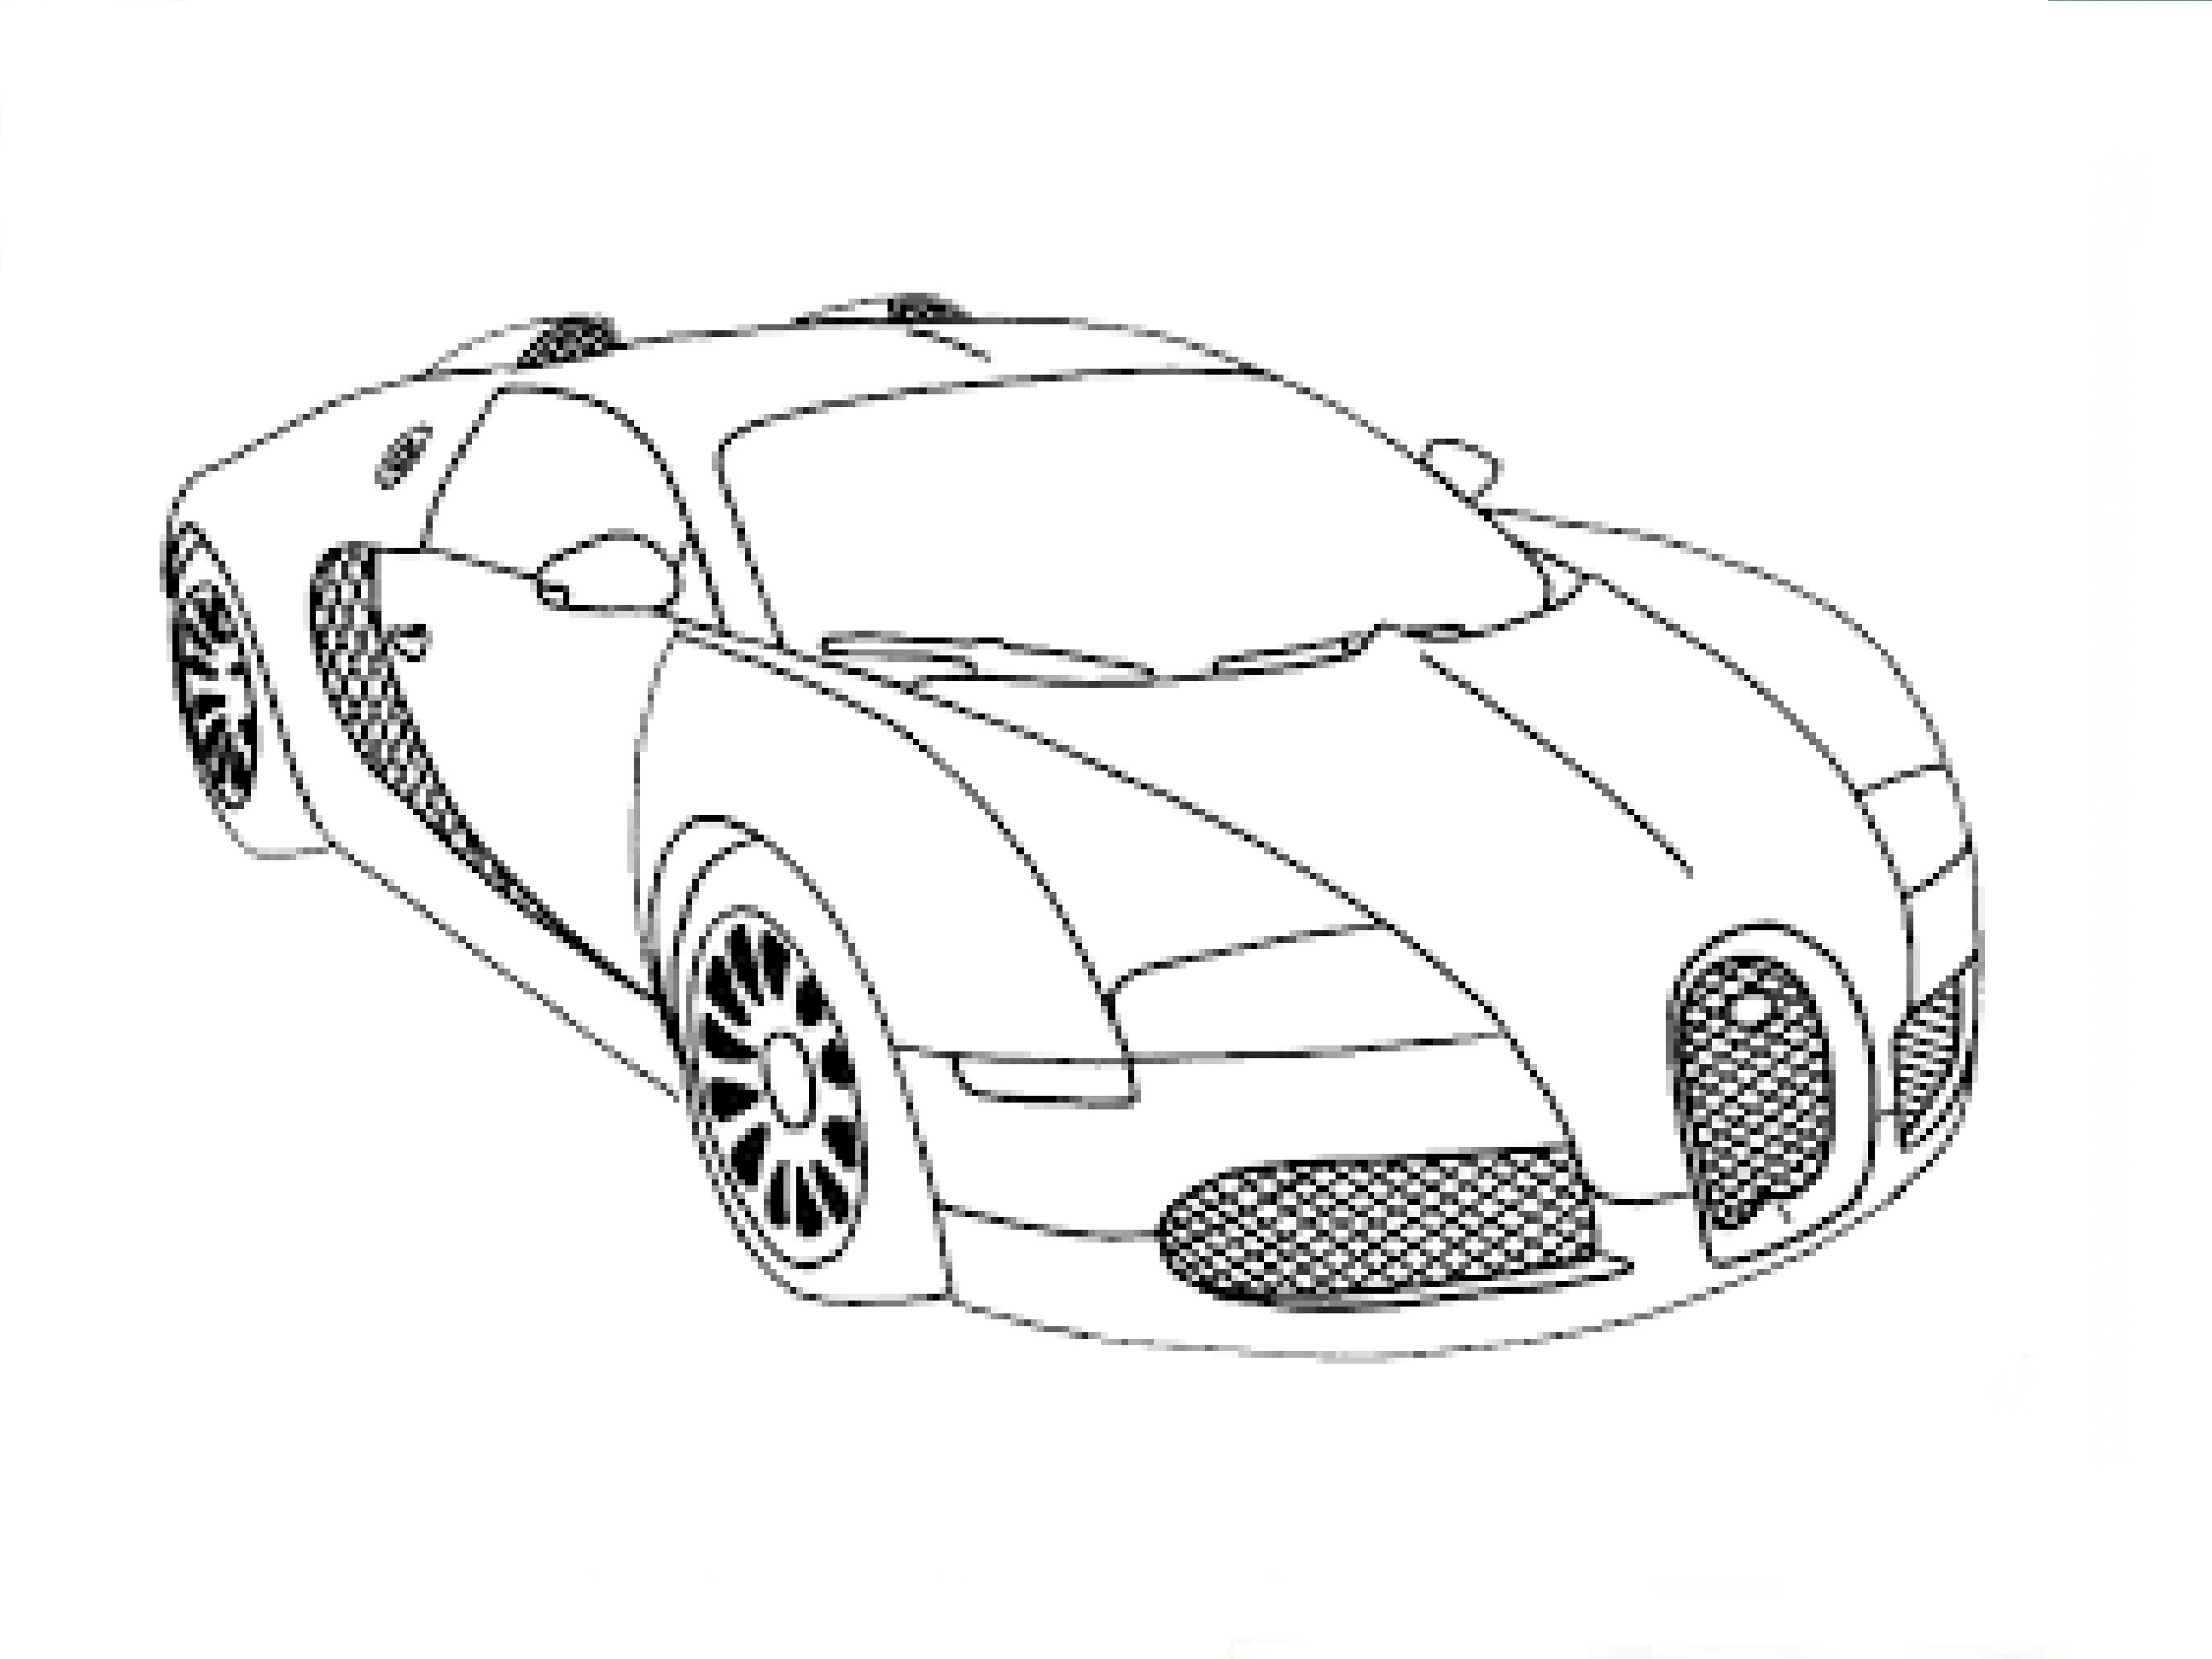 Drawn vehicle bugatti veyron /  / drawing: Быстрое